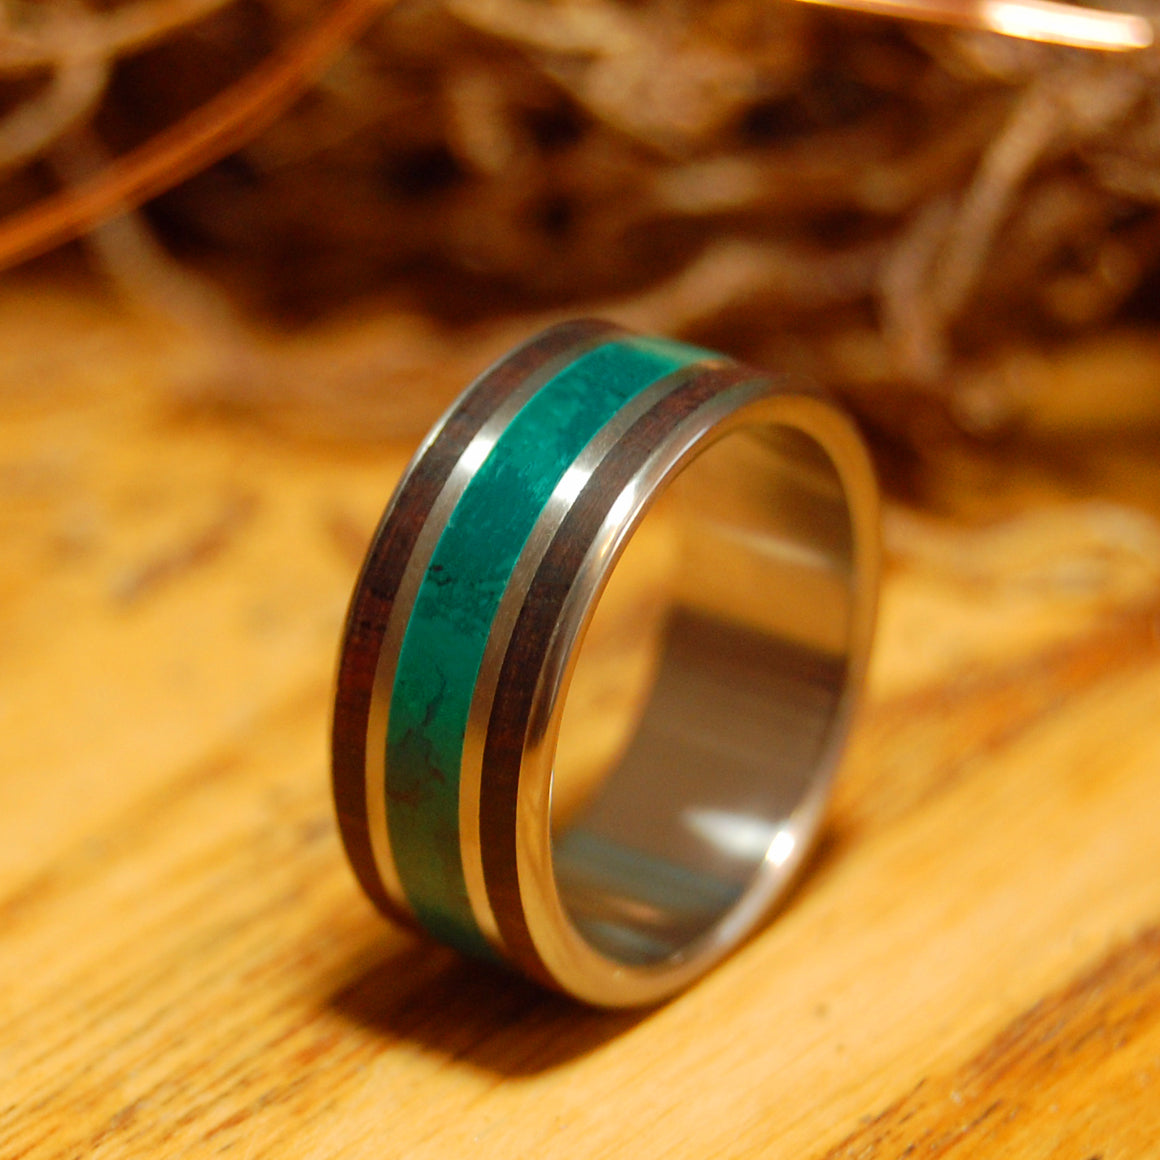 ROSEWOOD MORNING SONG | Jade and Rose Wood Titanium Wedding Rings - Minter and Richter Designs